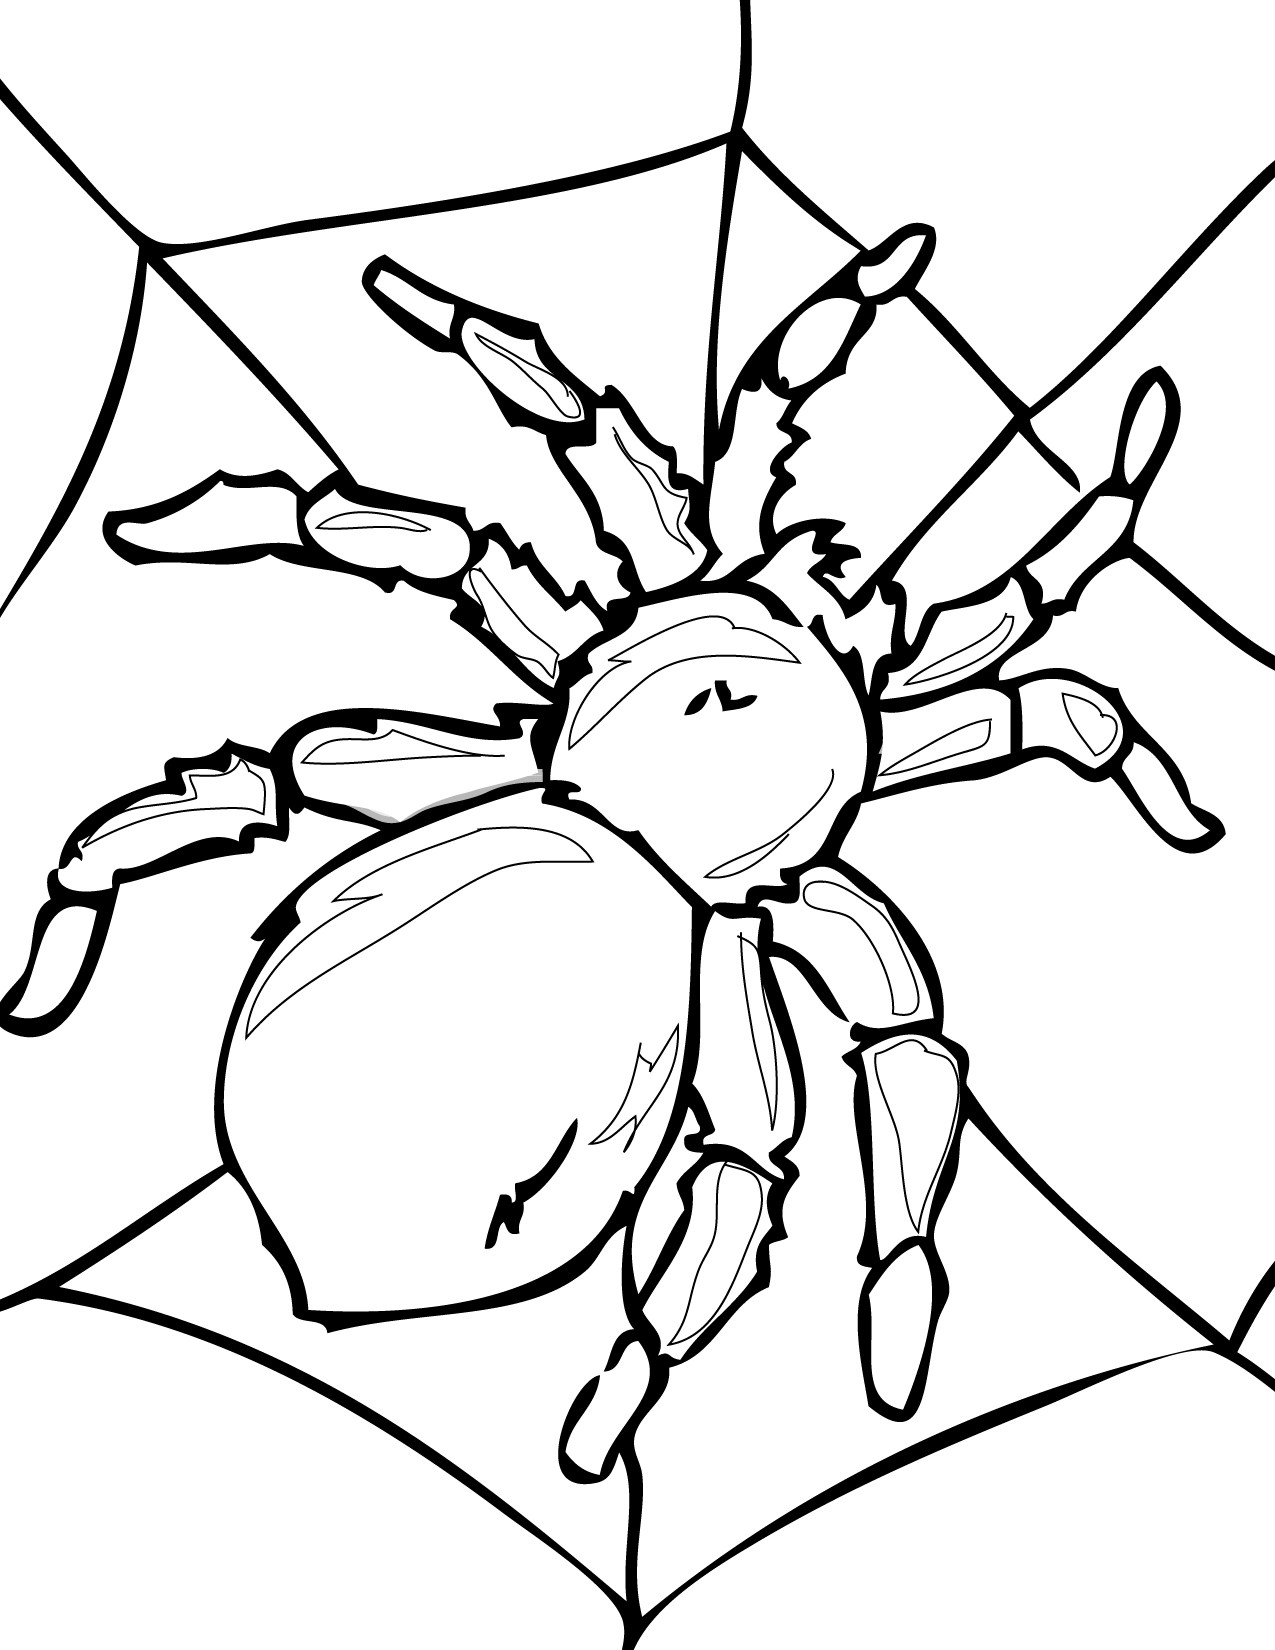 Spider_Coloring_Pages_For_Kids_01